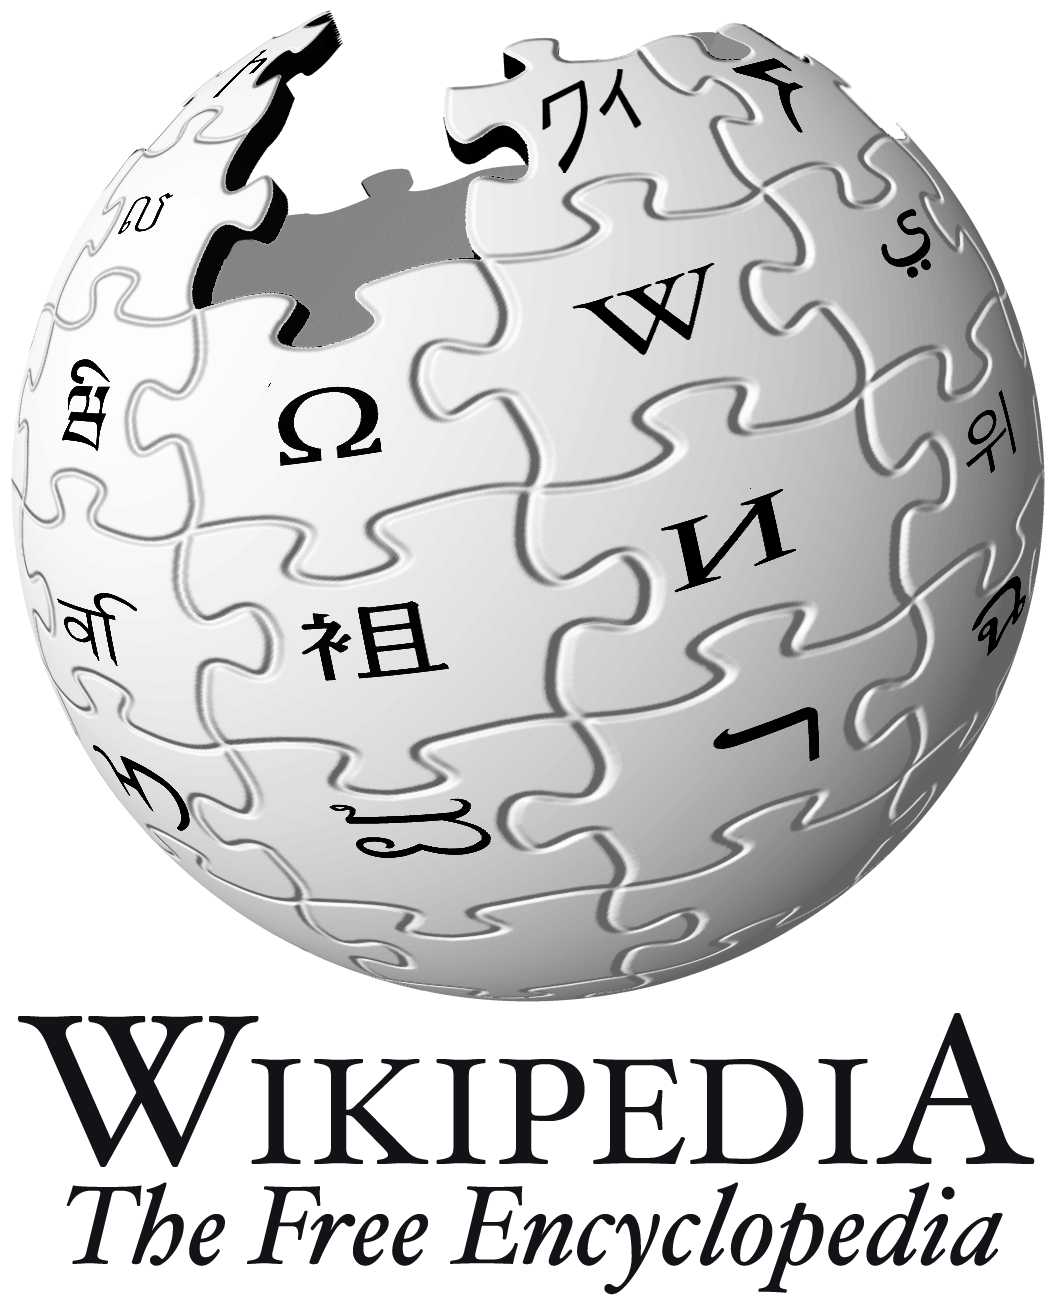 Photo via https://en.m.wikipedia.org/wiki/File:Wikipedia-logo-en-big.png Under the Creative Commons License